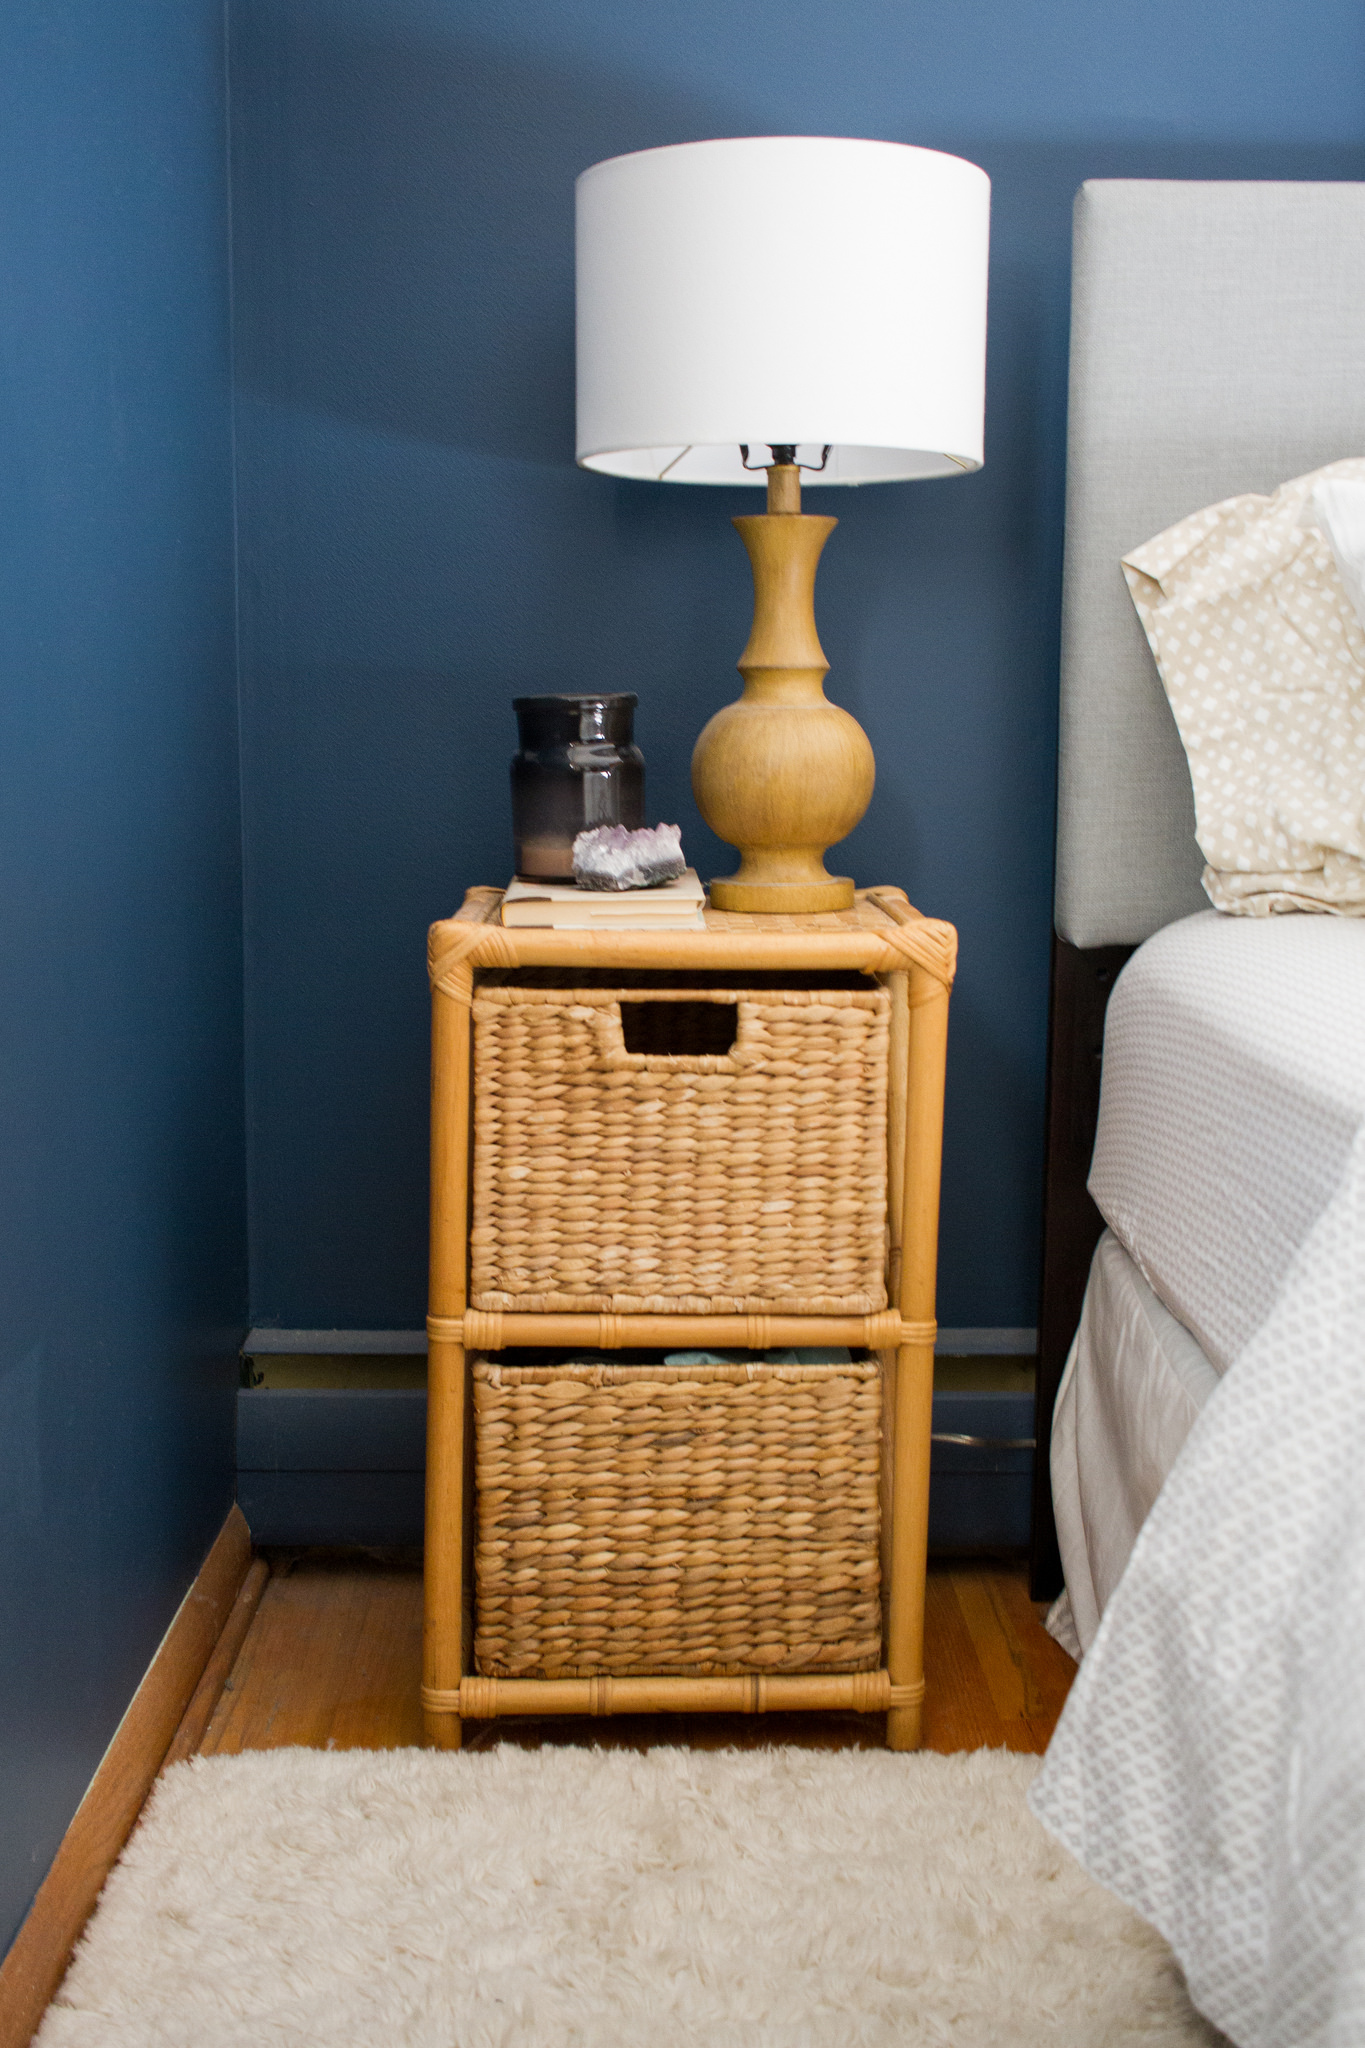 Bedroom_side table.jpg